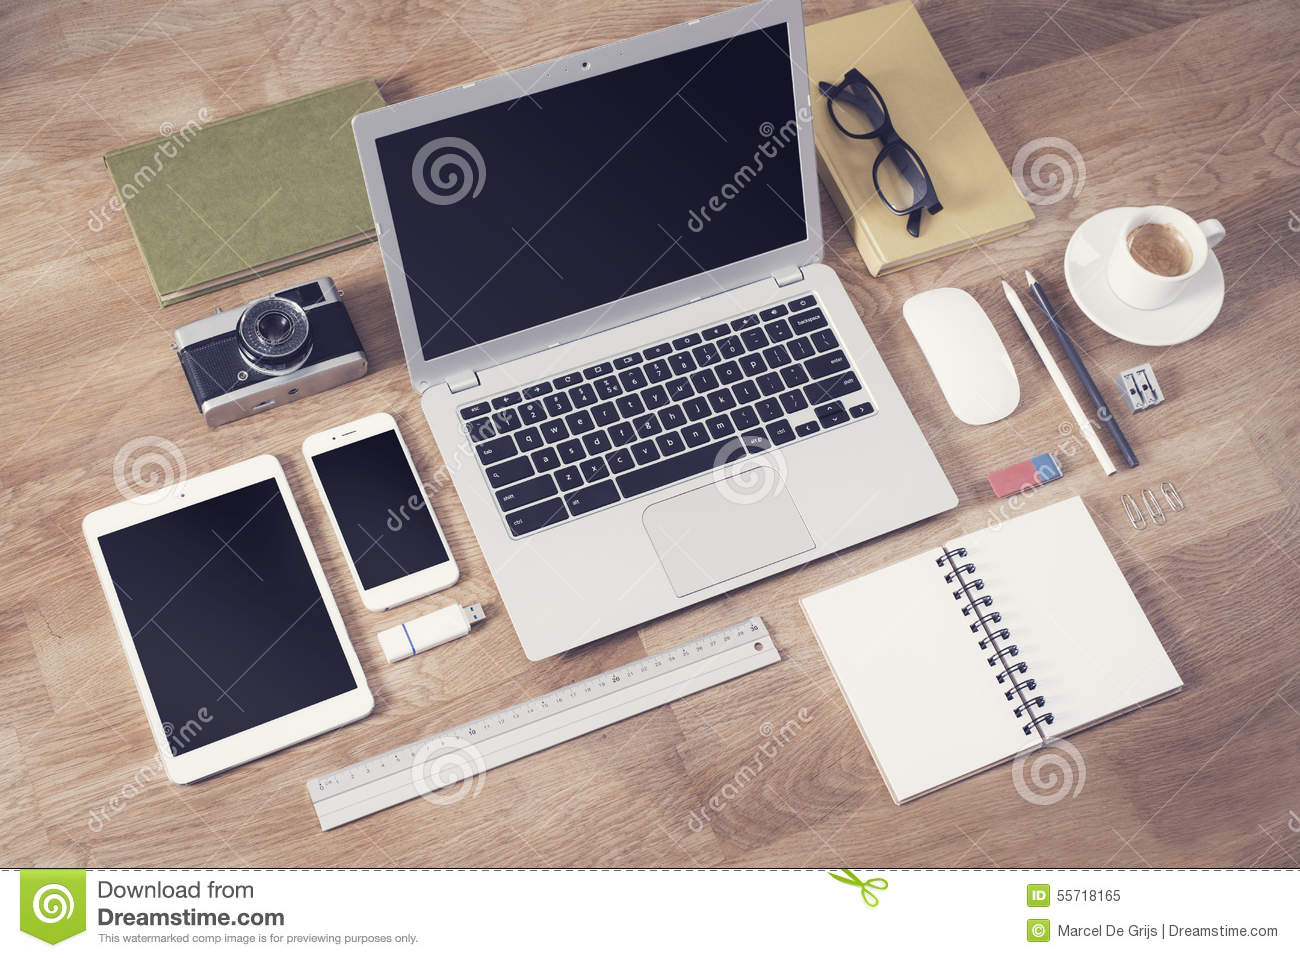 responsive design mockup with different office items on table top